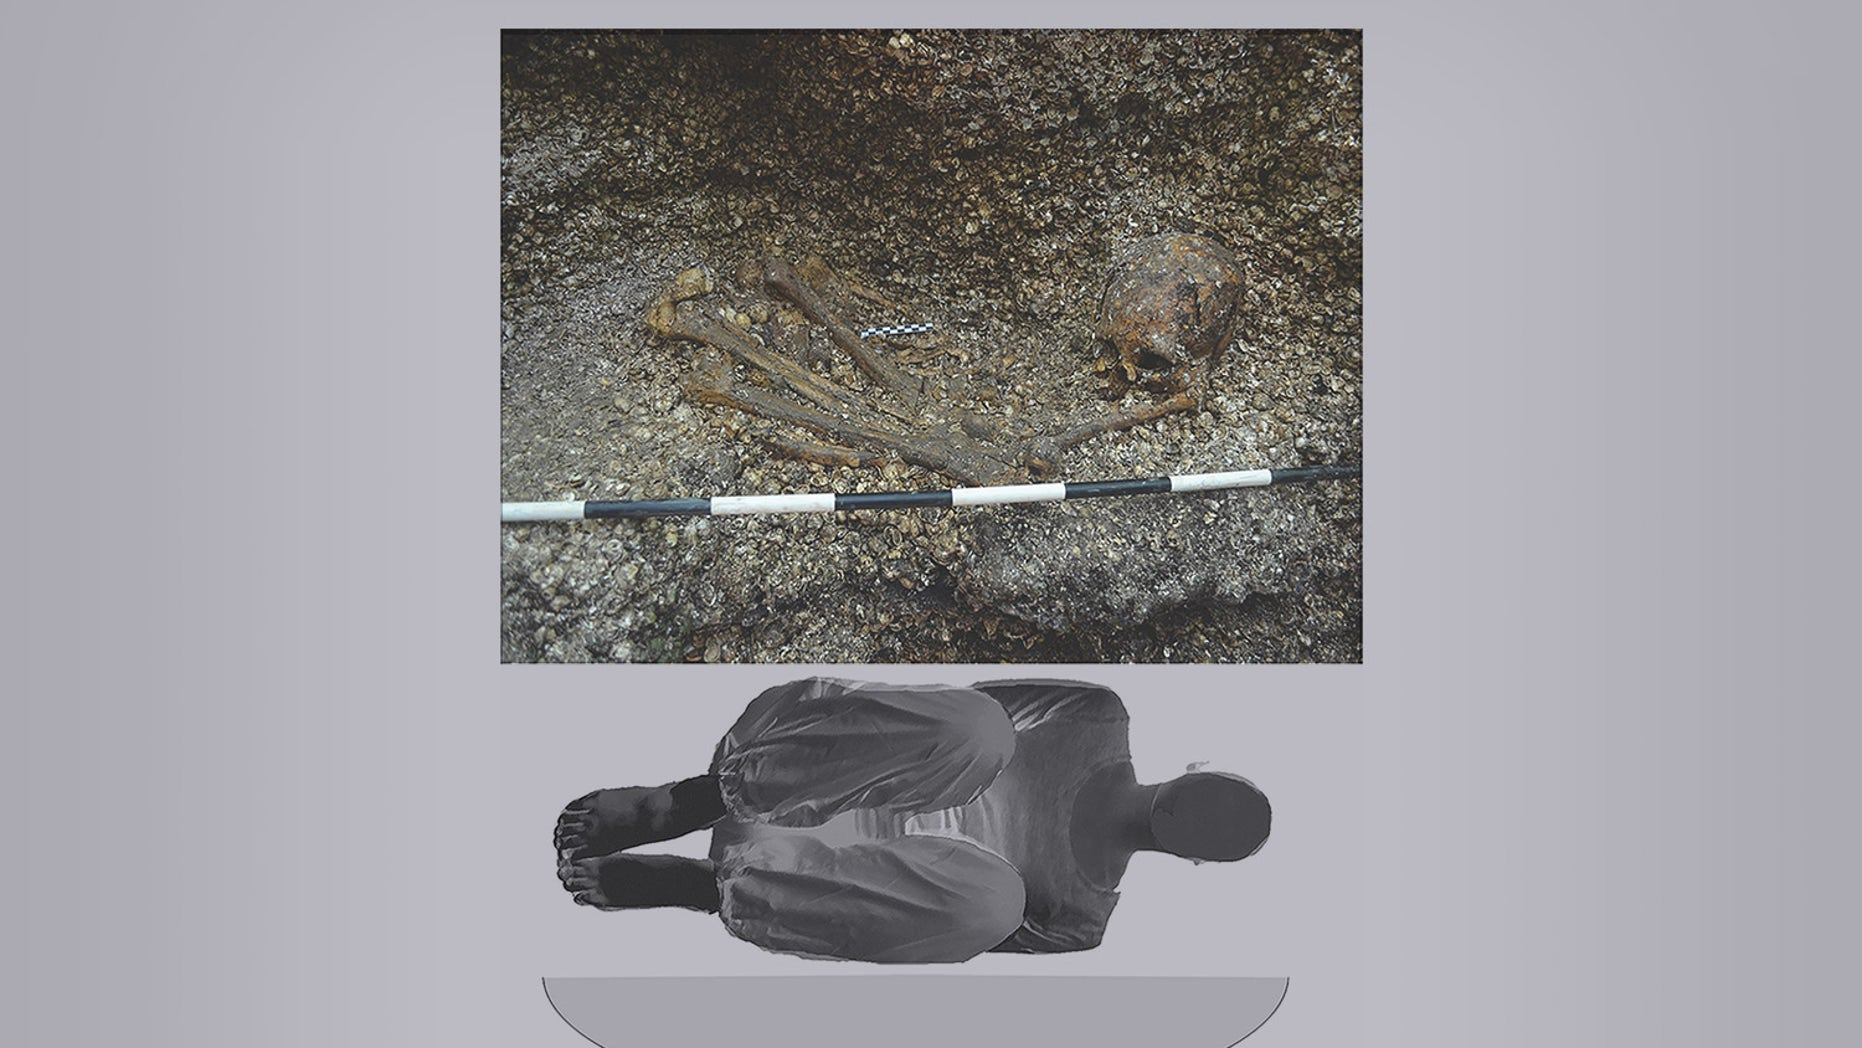 The excavated burial (top) of the ancient woman, next to an illustration (bottom) of how she was buried in a shallow oval pit about 5,900 years ago.